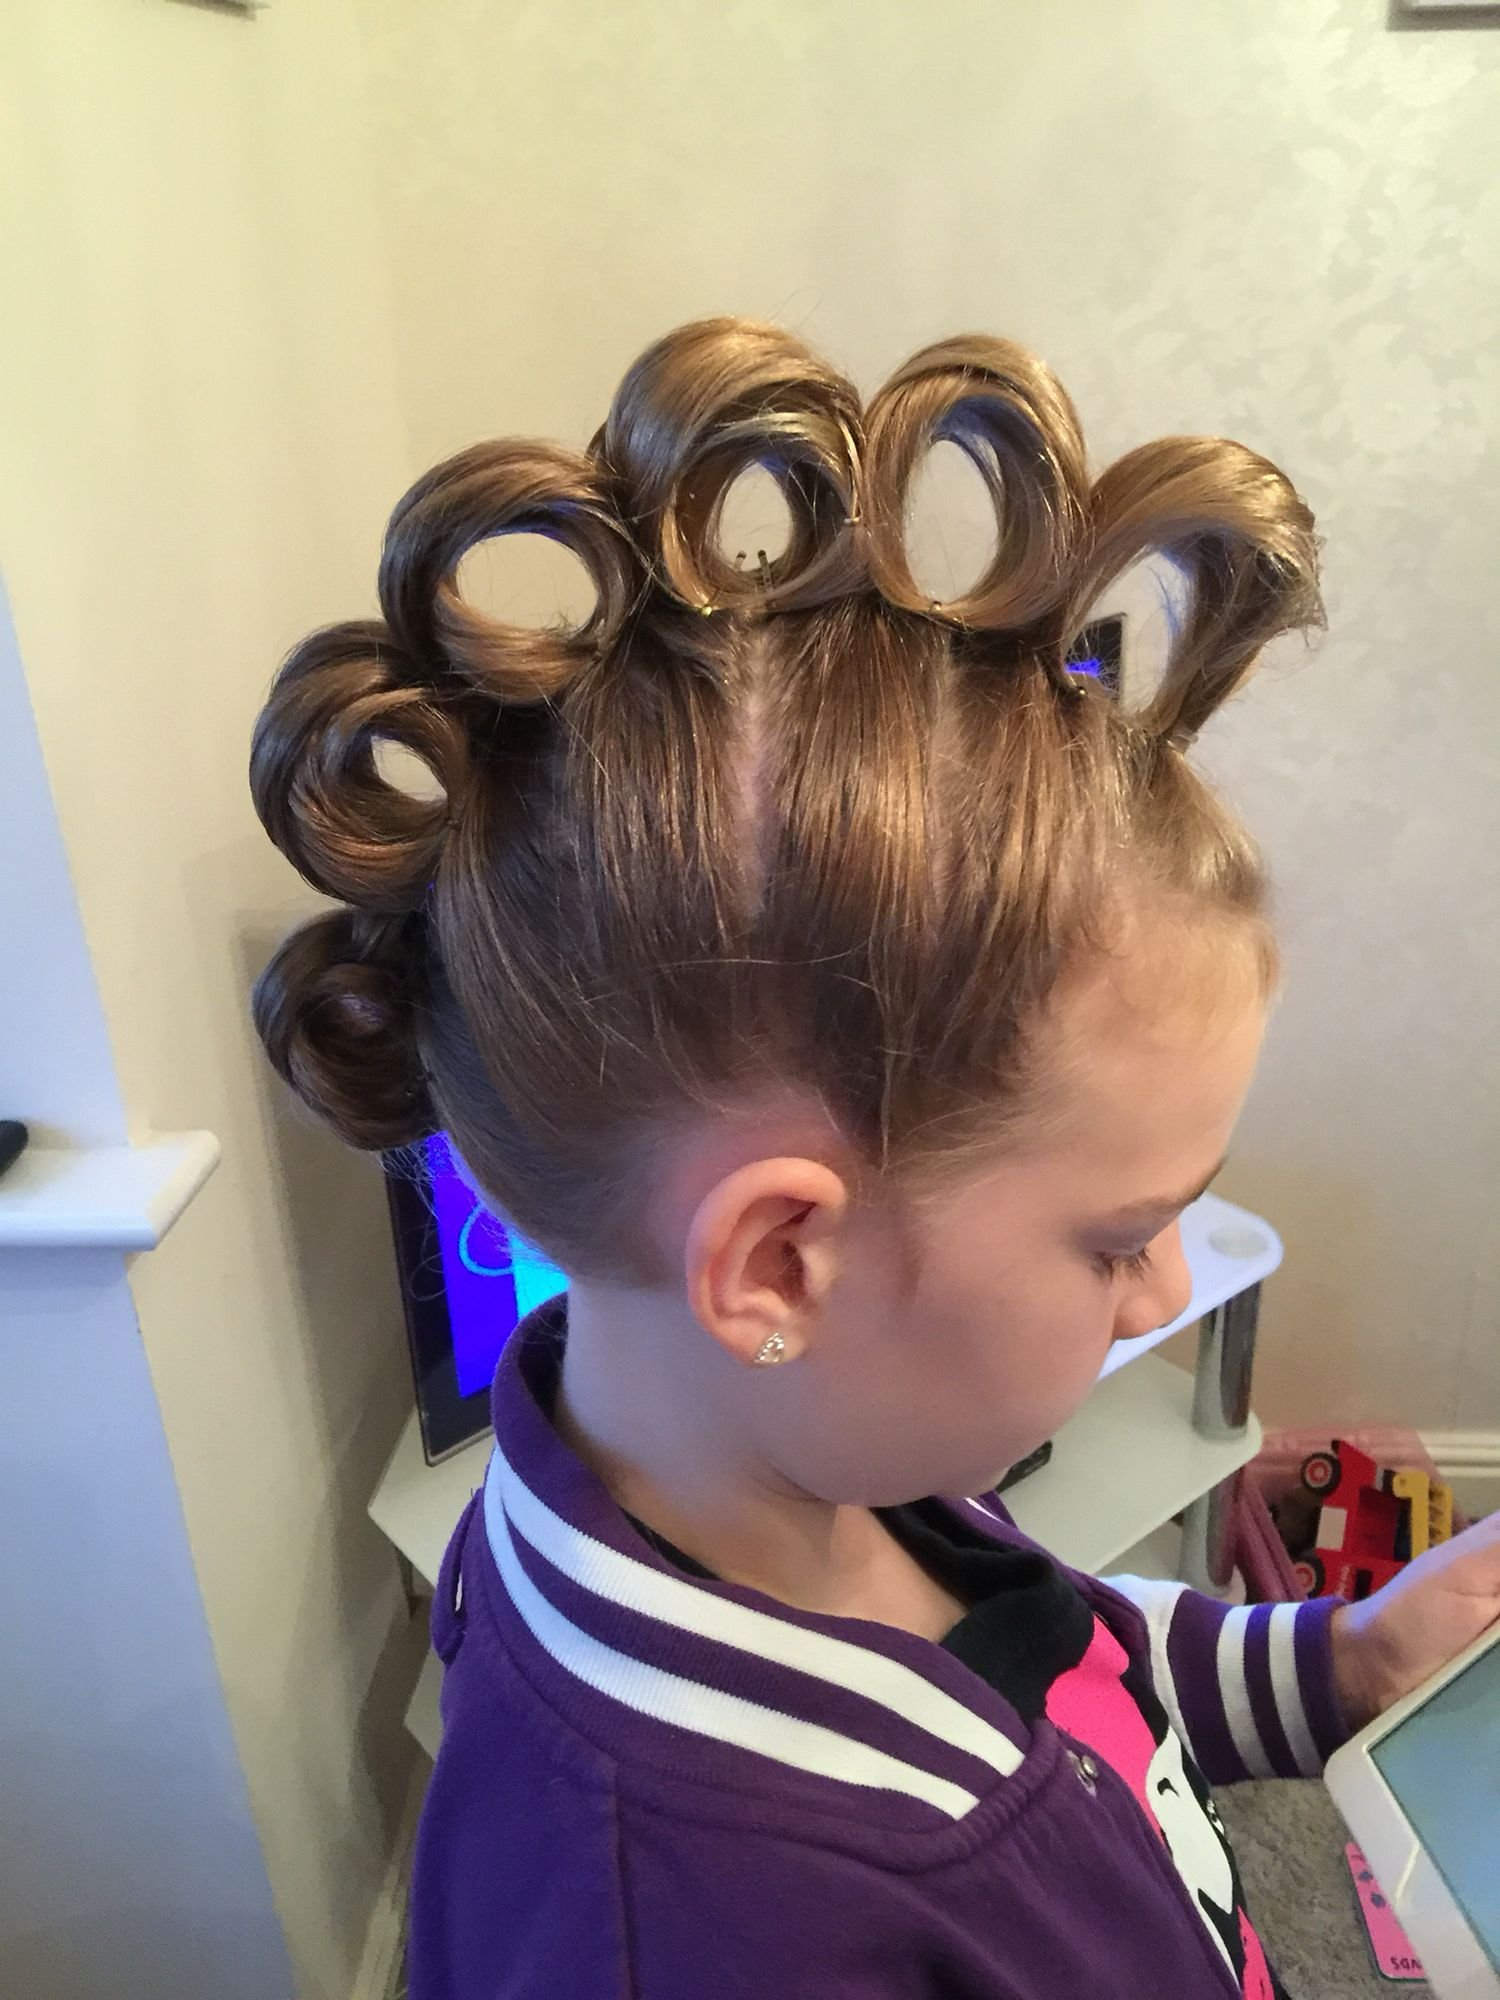 New Rolling Mohawk For Crazy Hair Day Hair Crazy Hair Days Ideas With Pictures